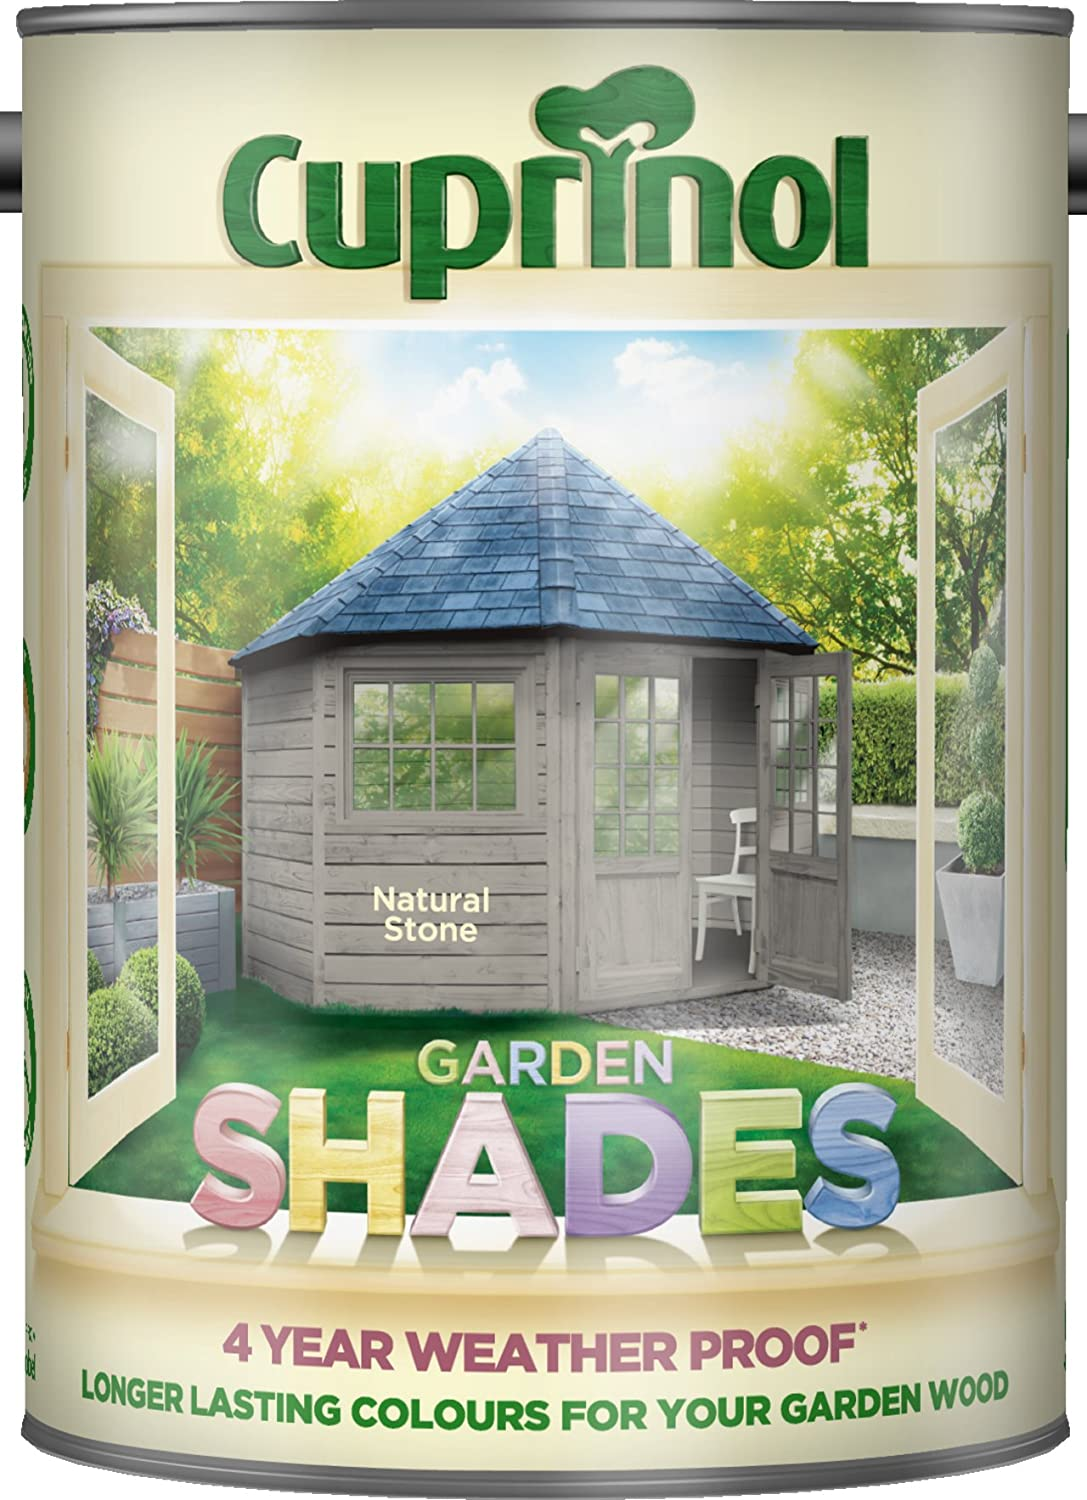 Cuprinol cupgsns5l 5 litre garden shades paint natural stone cuprinol cupgsns5l 5 litre garden shades paint natural stone amazon diy tools baanklon Image collections